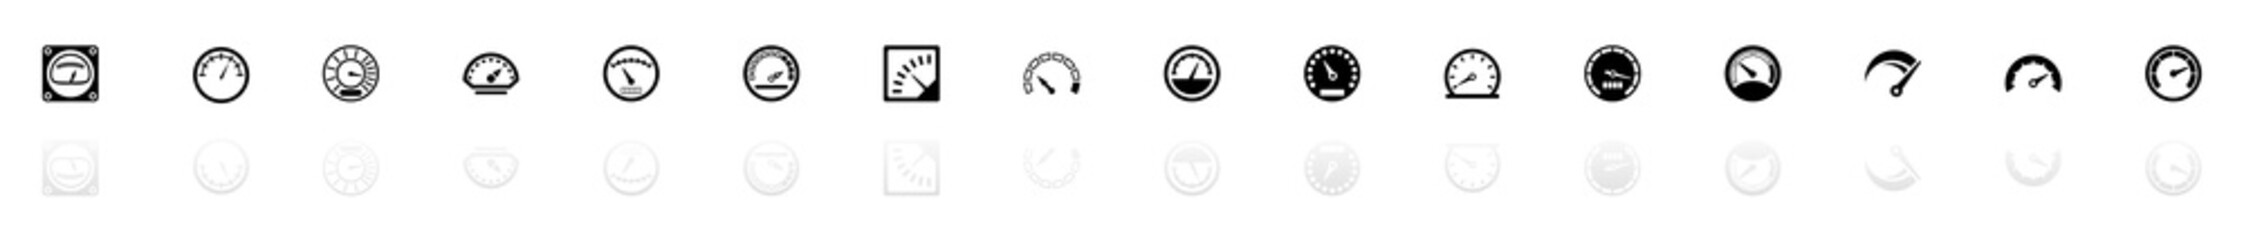 Speedometer icons - Black horizontal Illustration symbol on White Background with a mirror Shadow reflection. Flat Vector Icon.